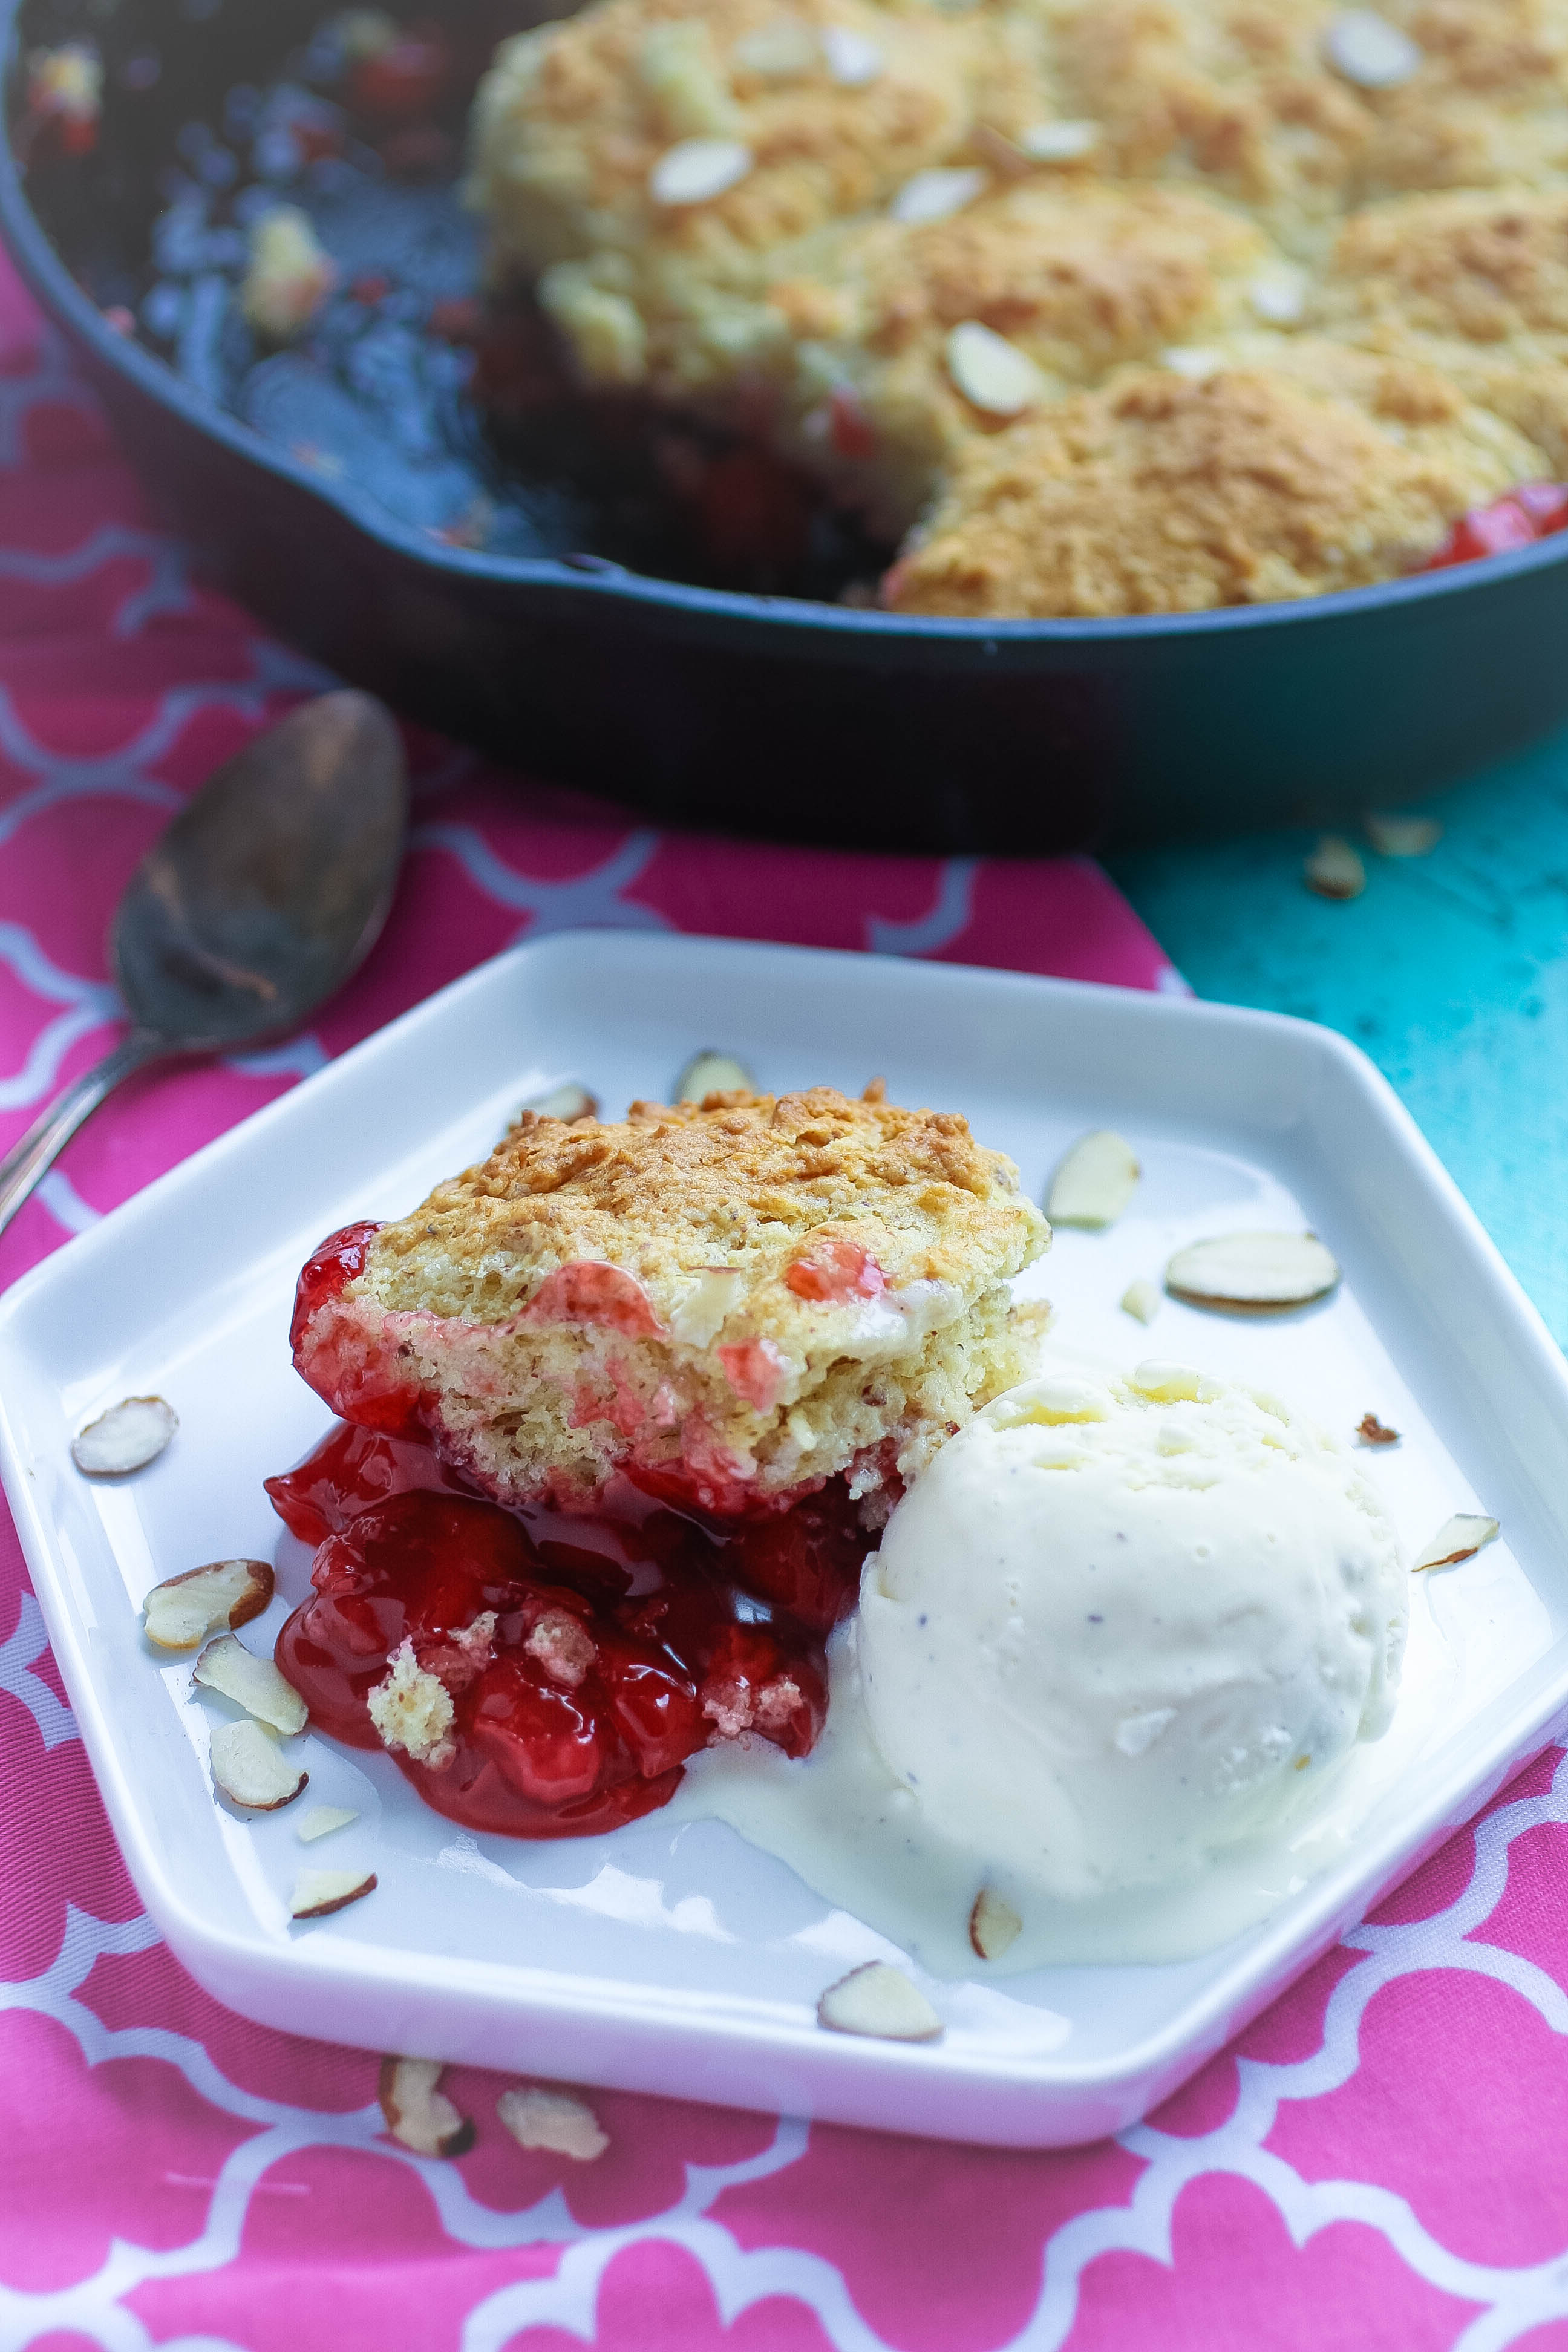 Cherry-Almond Skillet Cobbler is delicious -- especially with ice cream! Cherry-Almond Skillet Cobbler is a dessert to fall in love over!